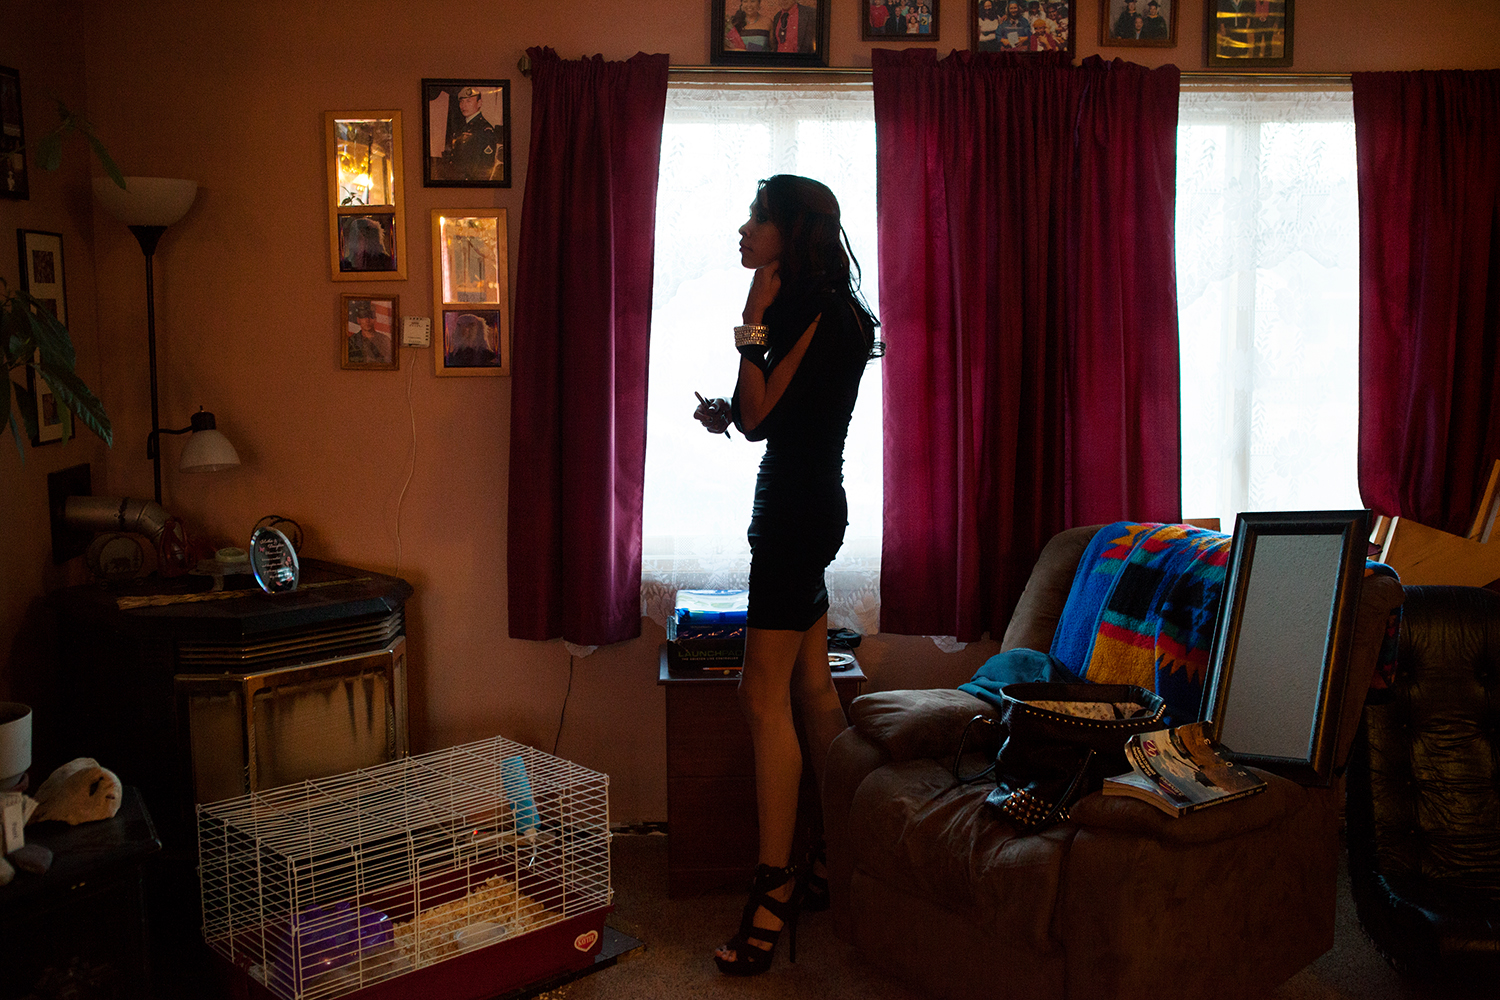 Dale standing in her living room wearing her prom dress.